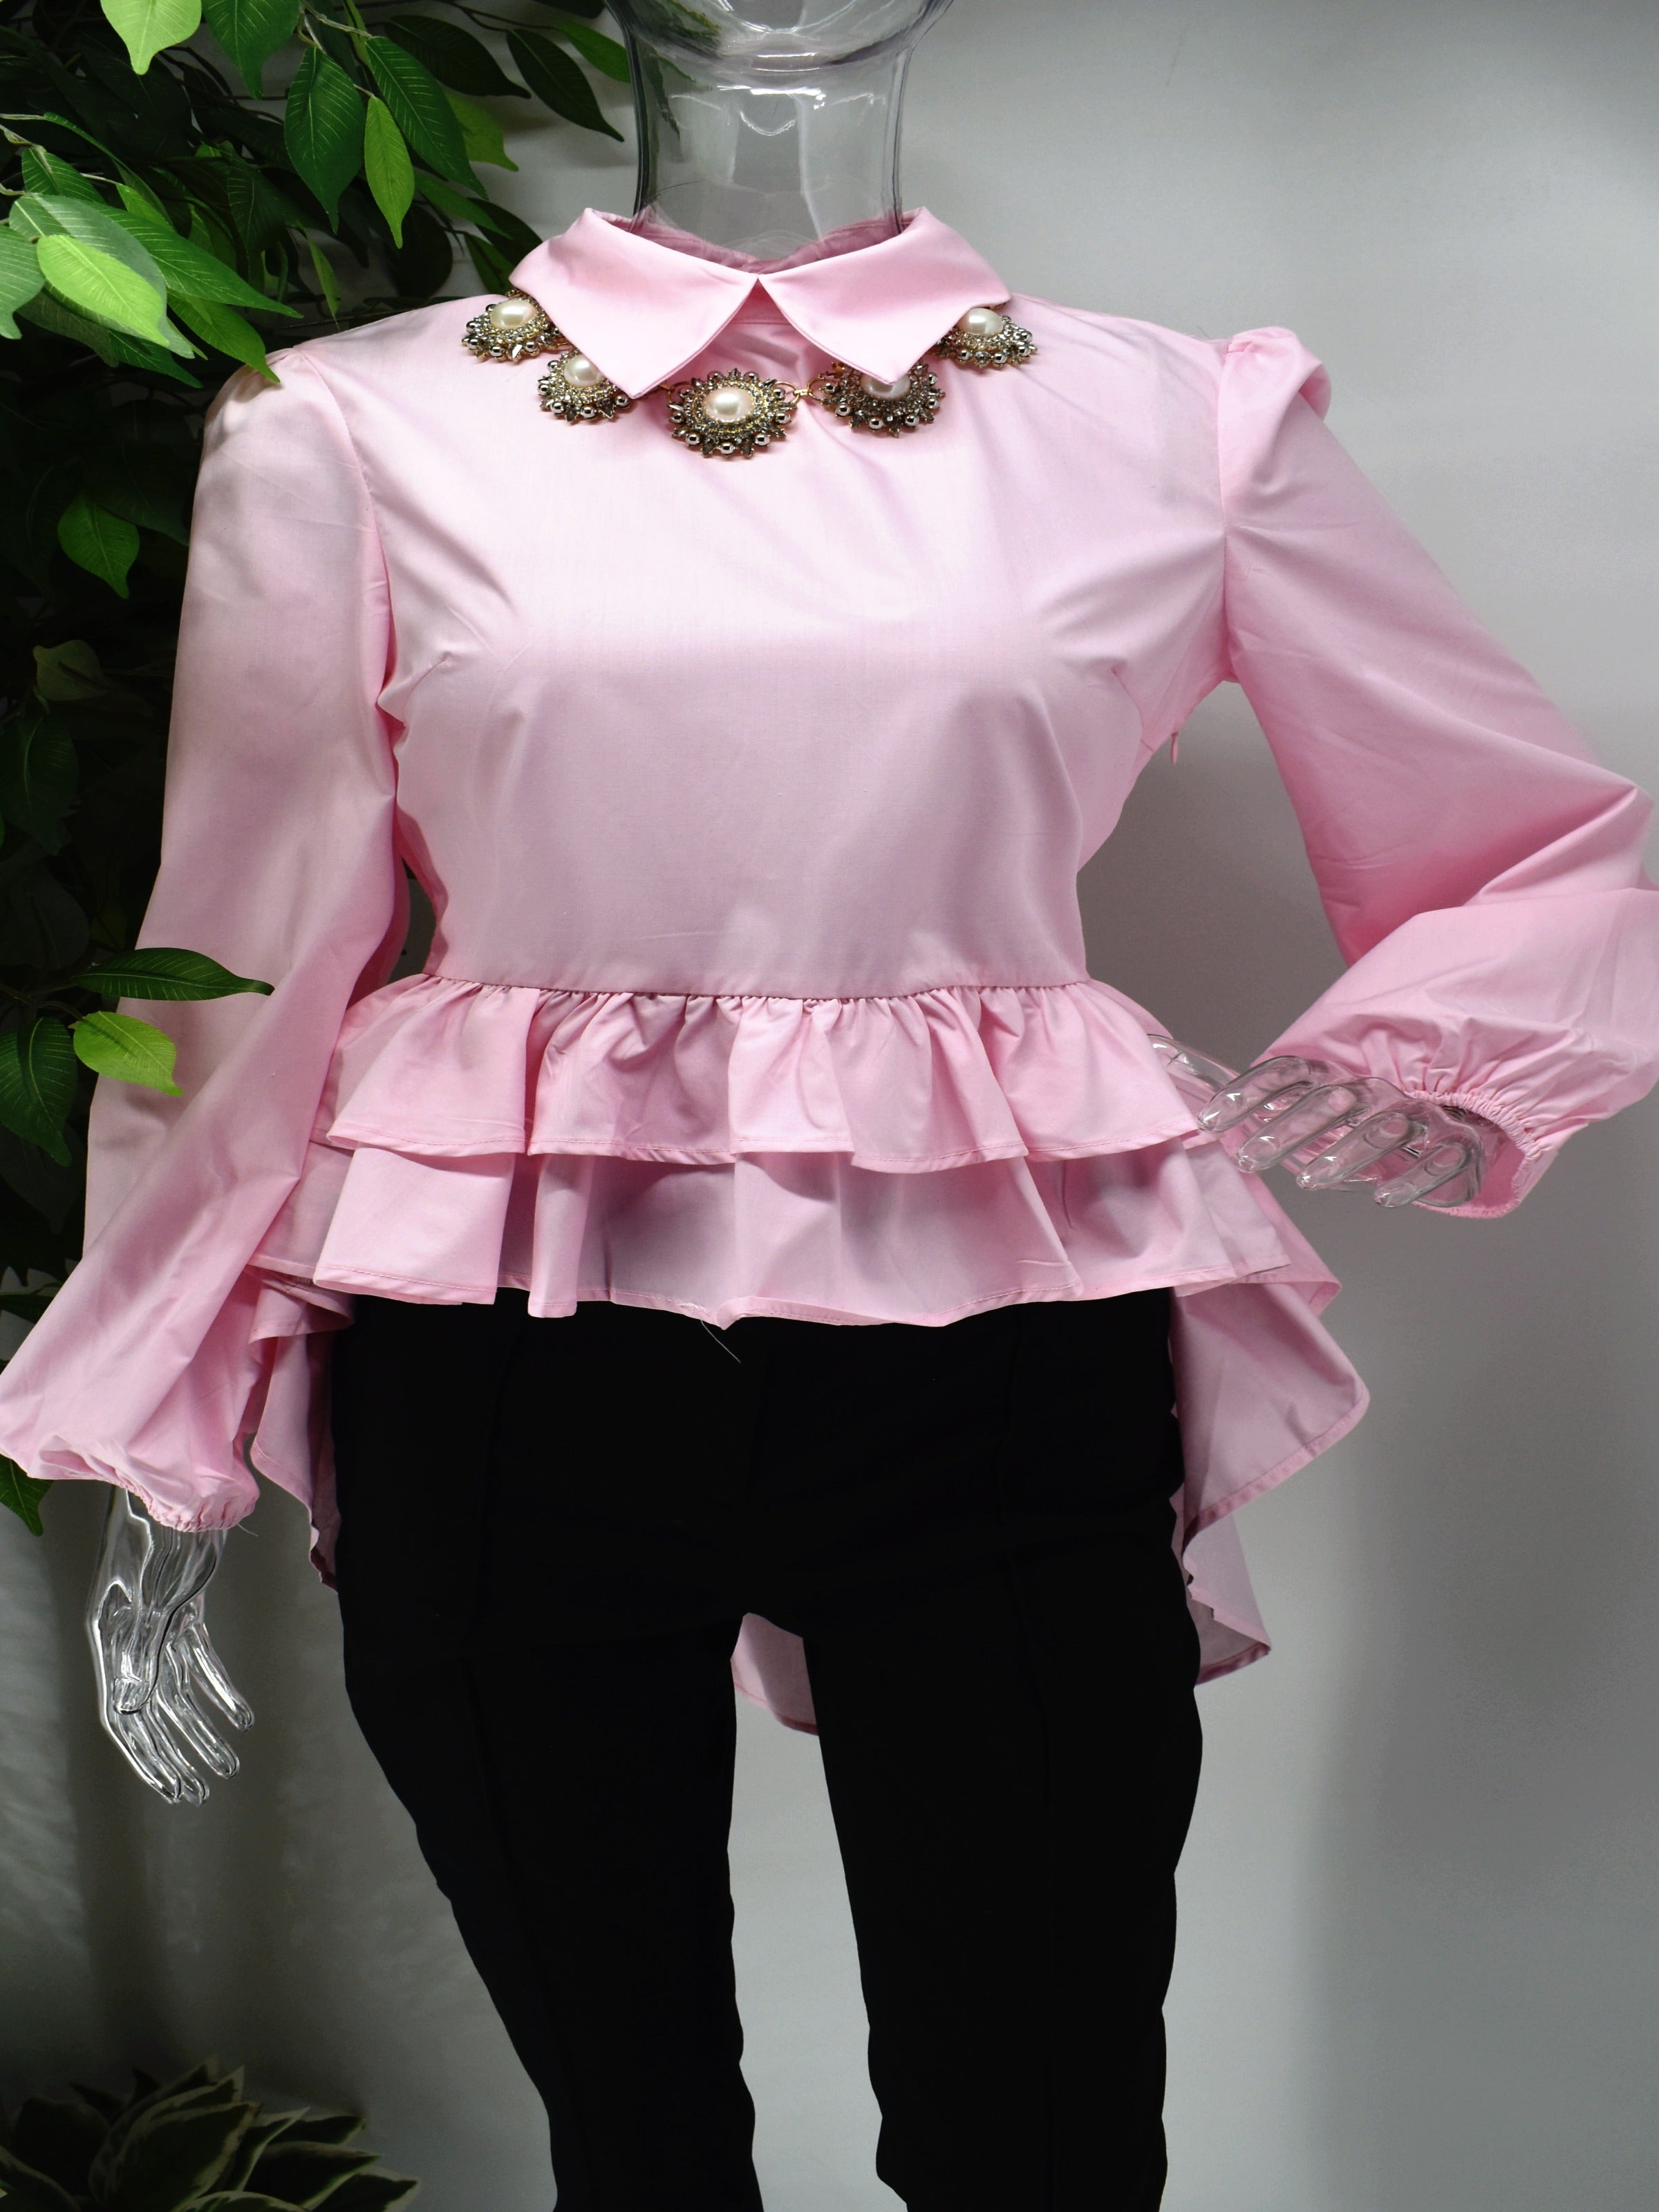 Fashion forward yet comfortably chic is what our Brier pink shirt Blouse will deliver.  Brier is a pink shirt blouse with a ruffled peplum waistline with the back hem longer than the front.